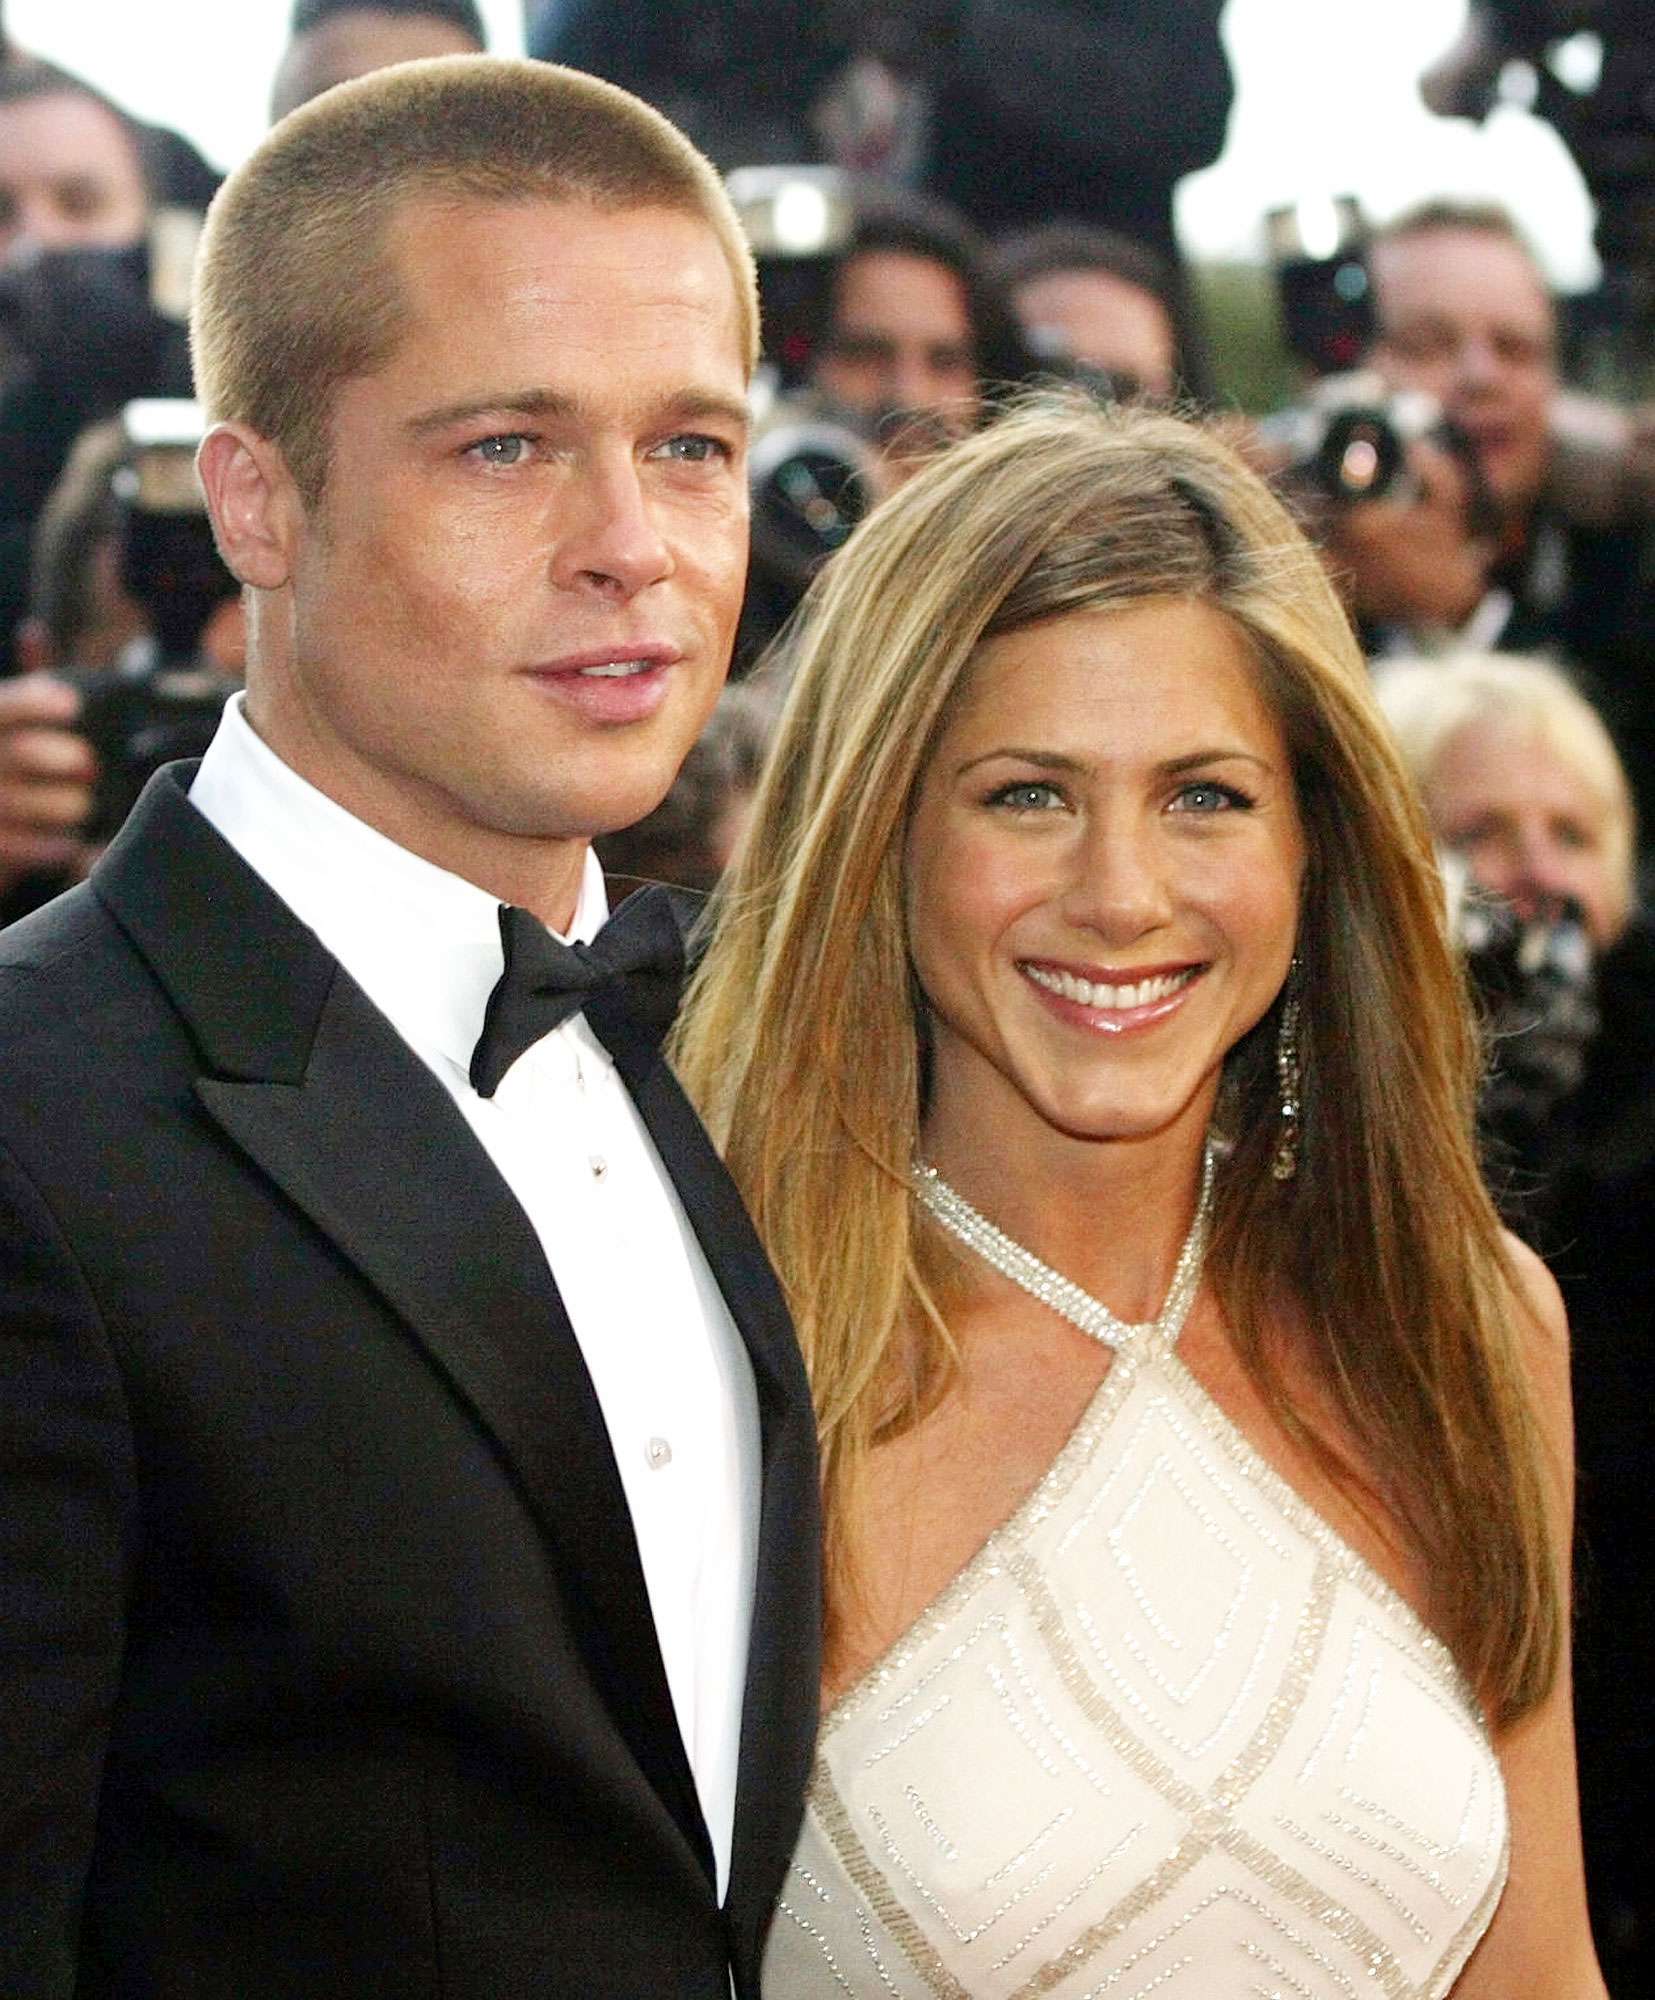 Jennifer Aniston and Brad Pitt in 2004 Think Its Hysterical People Want Them Back Together